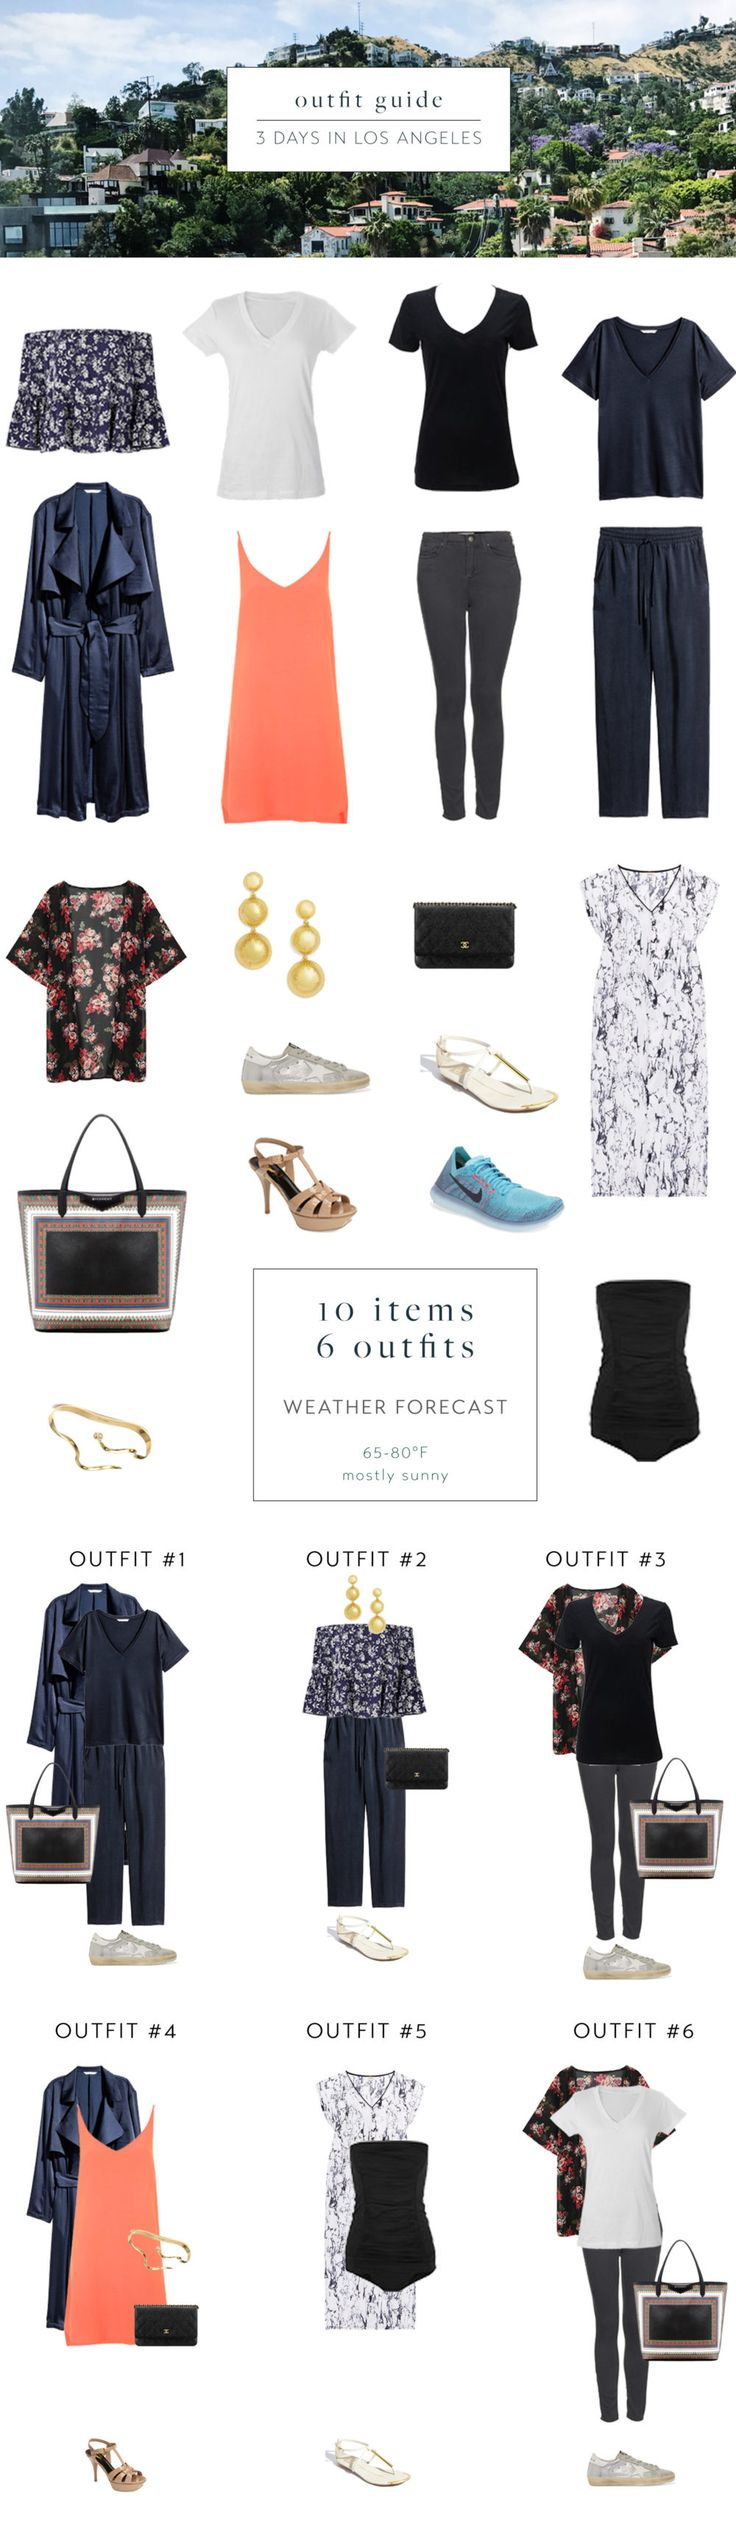 10 items, 6 outfits for Los Angeles